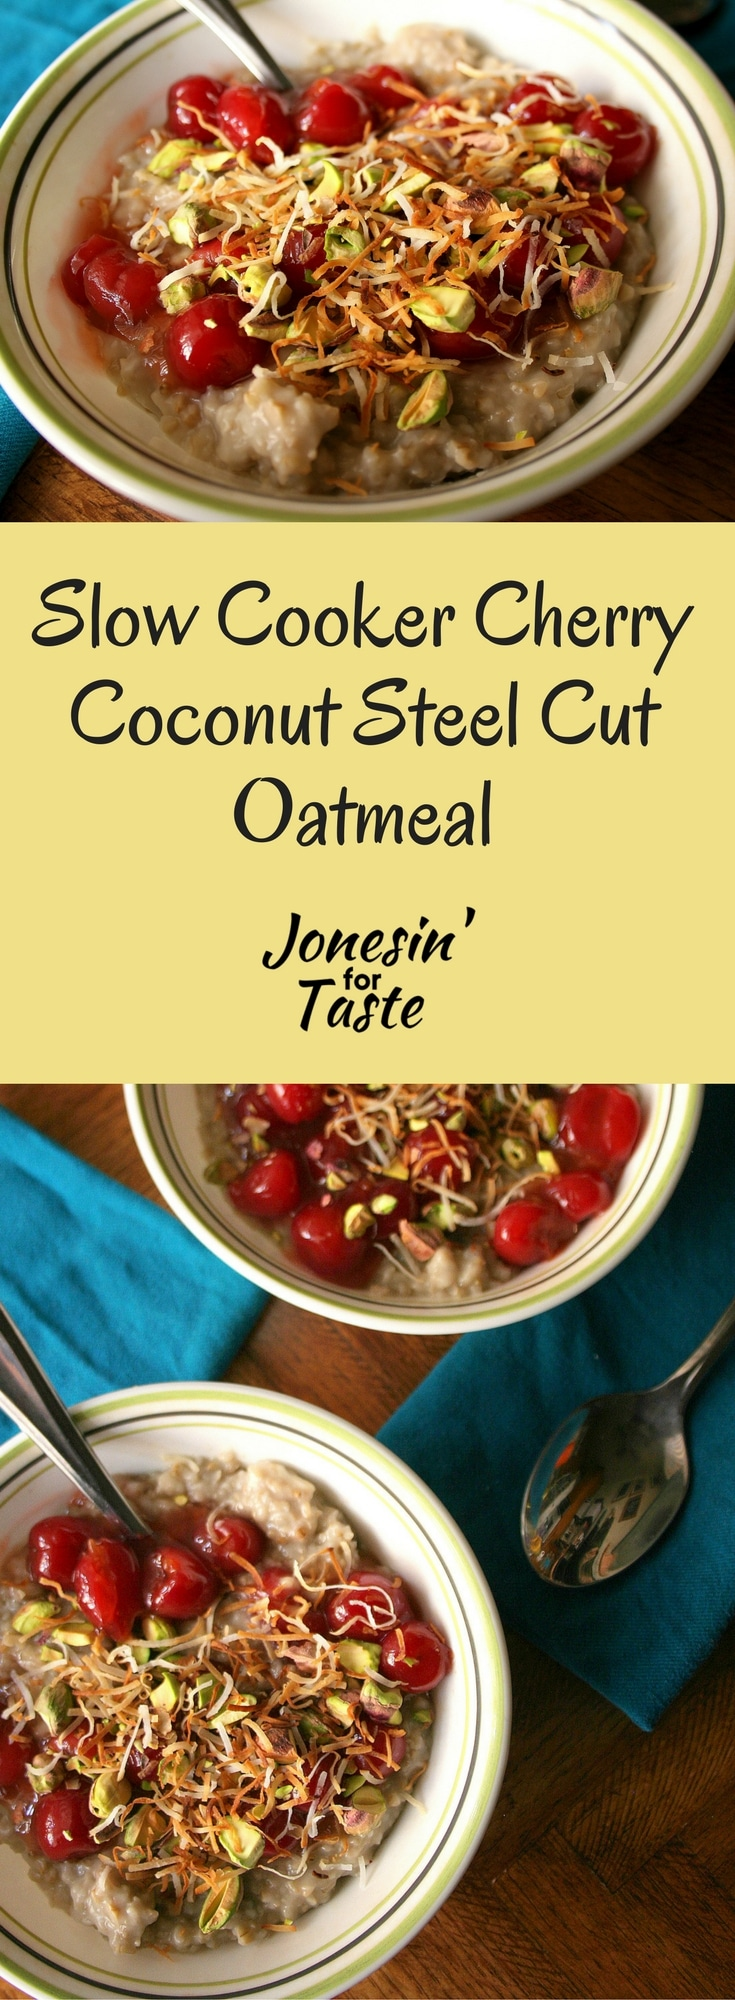 Slow Cooker Cherry Coconut Steel Cut Oatmeal is a different oatmeal & easy overnight breakfast dish topped with cherries, toasted coconut, and pistachios. #slowcooker #easybreakfastrecipes #oatmealrecipes